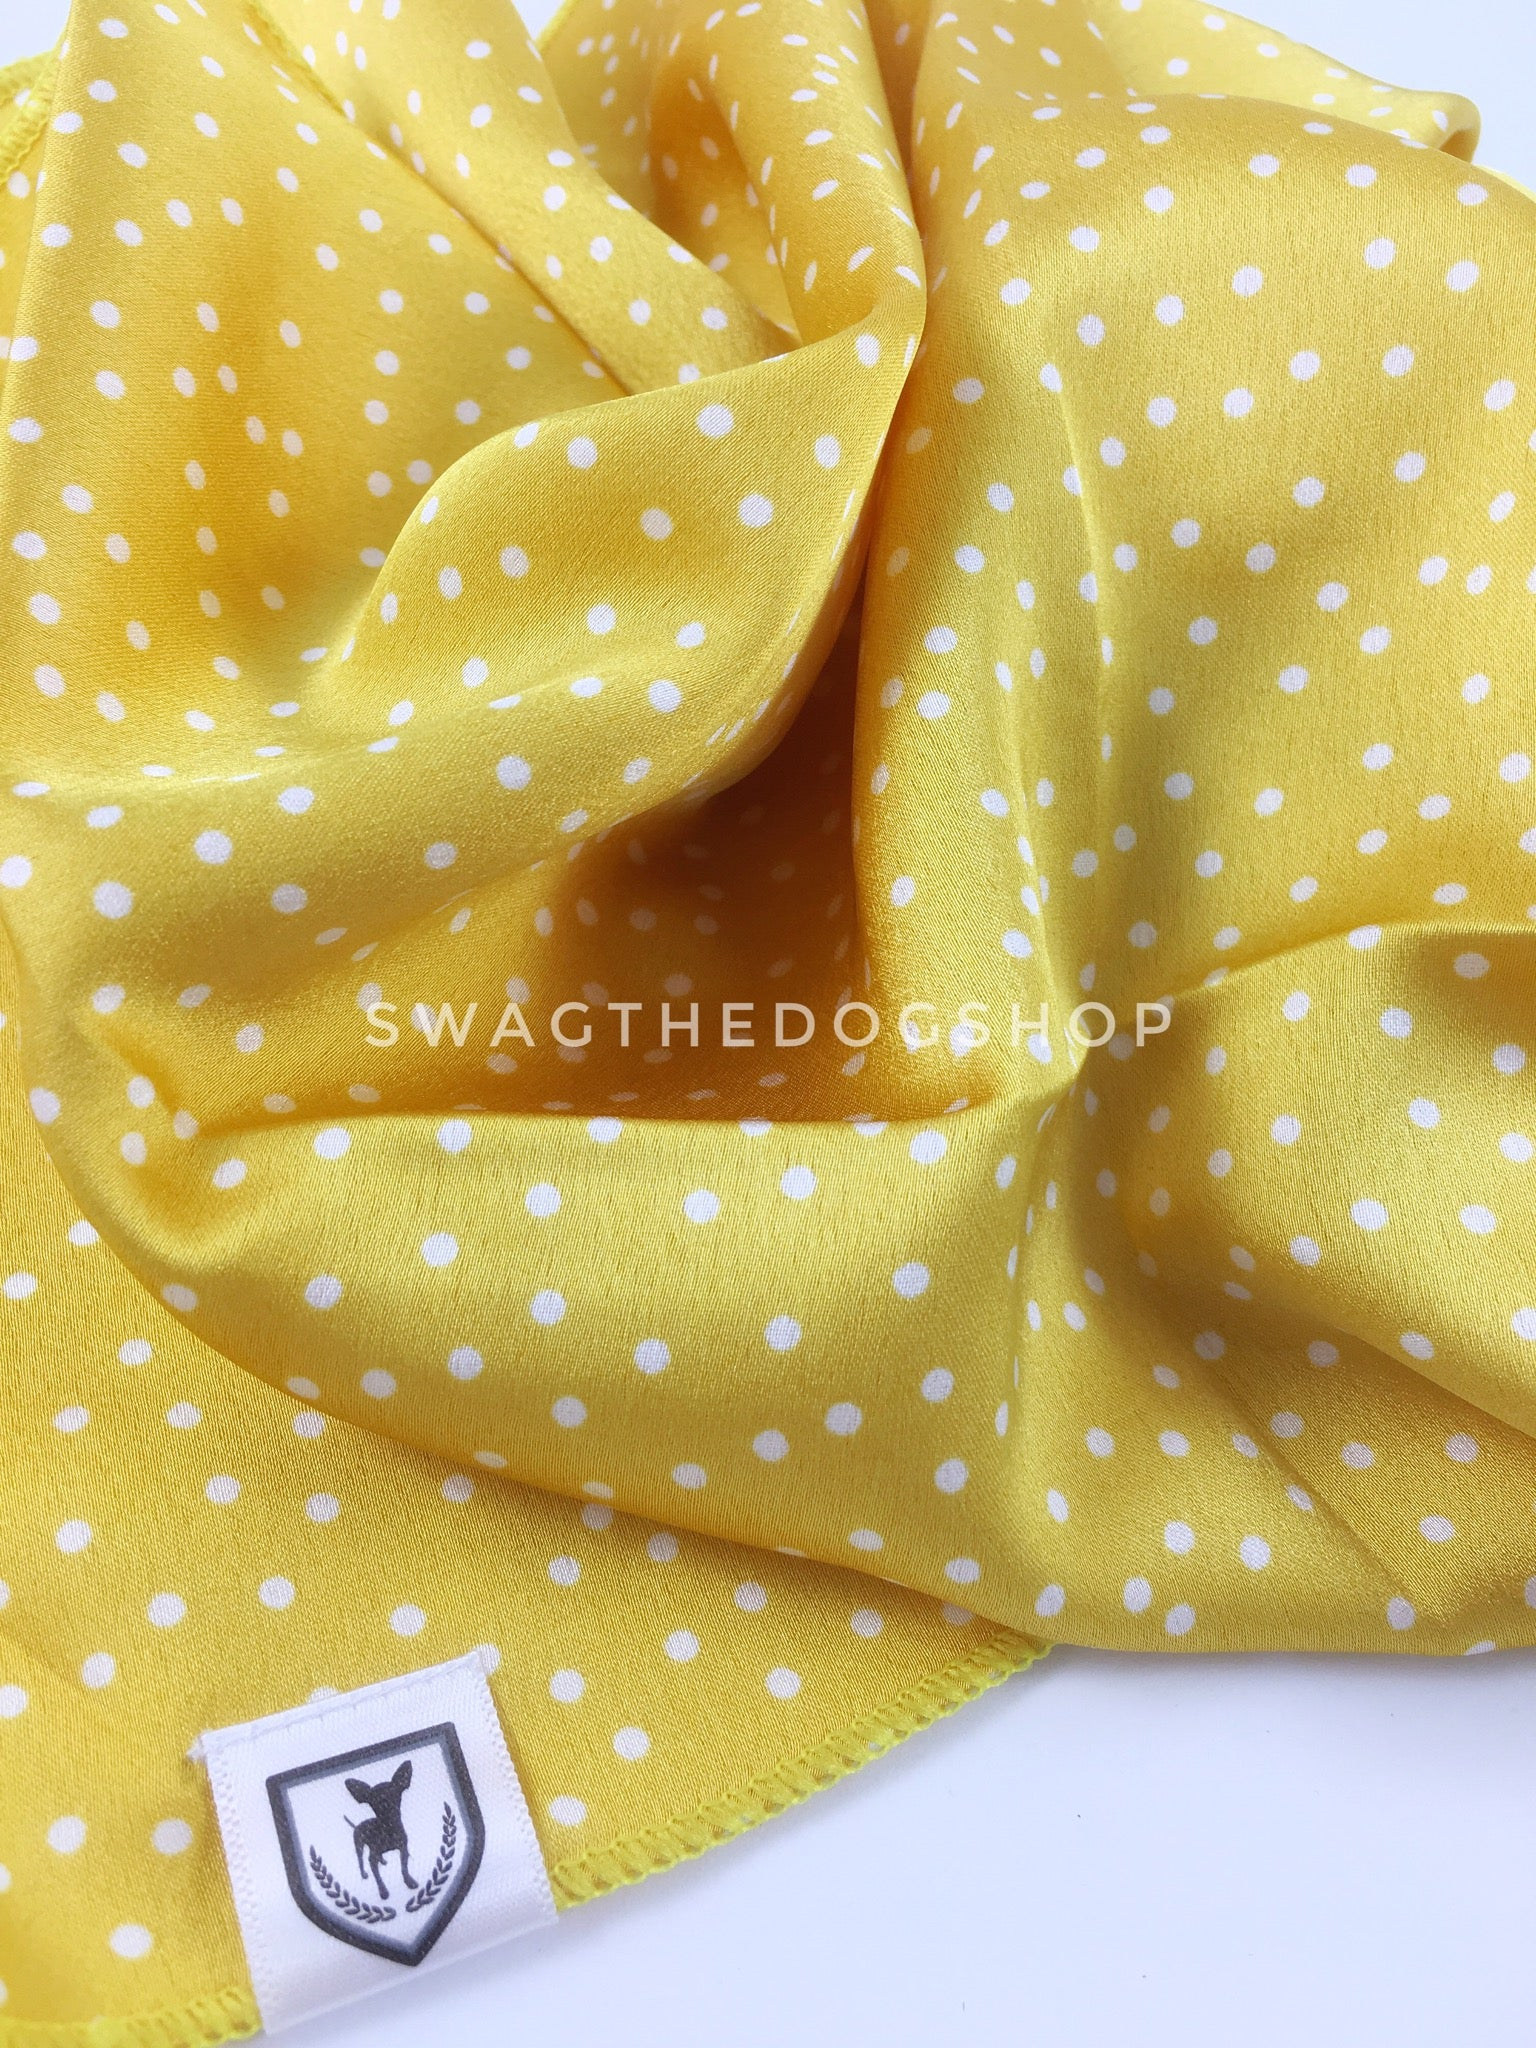 Polka Itty Bitty Sunny Yellow Swagdana Scarf - Close-up View of Product. Dog Bandana. Dog Scarf.